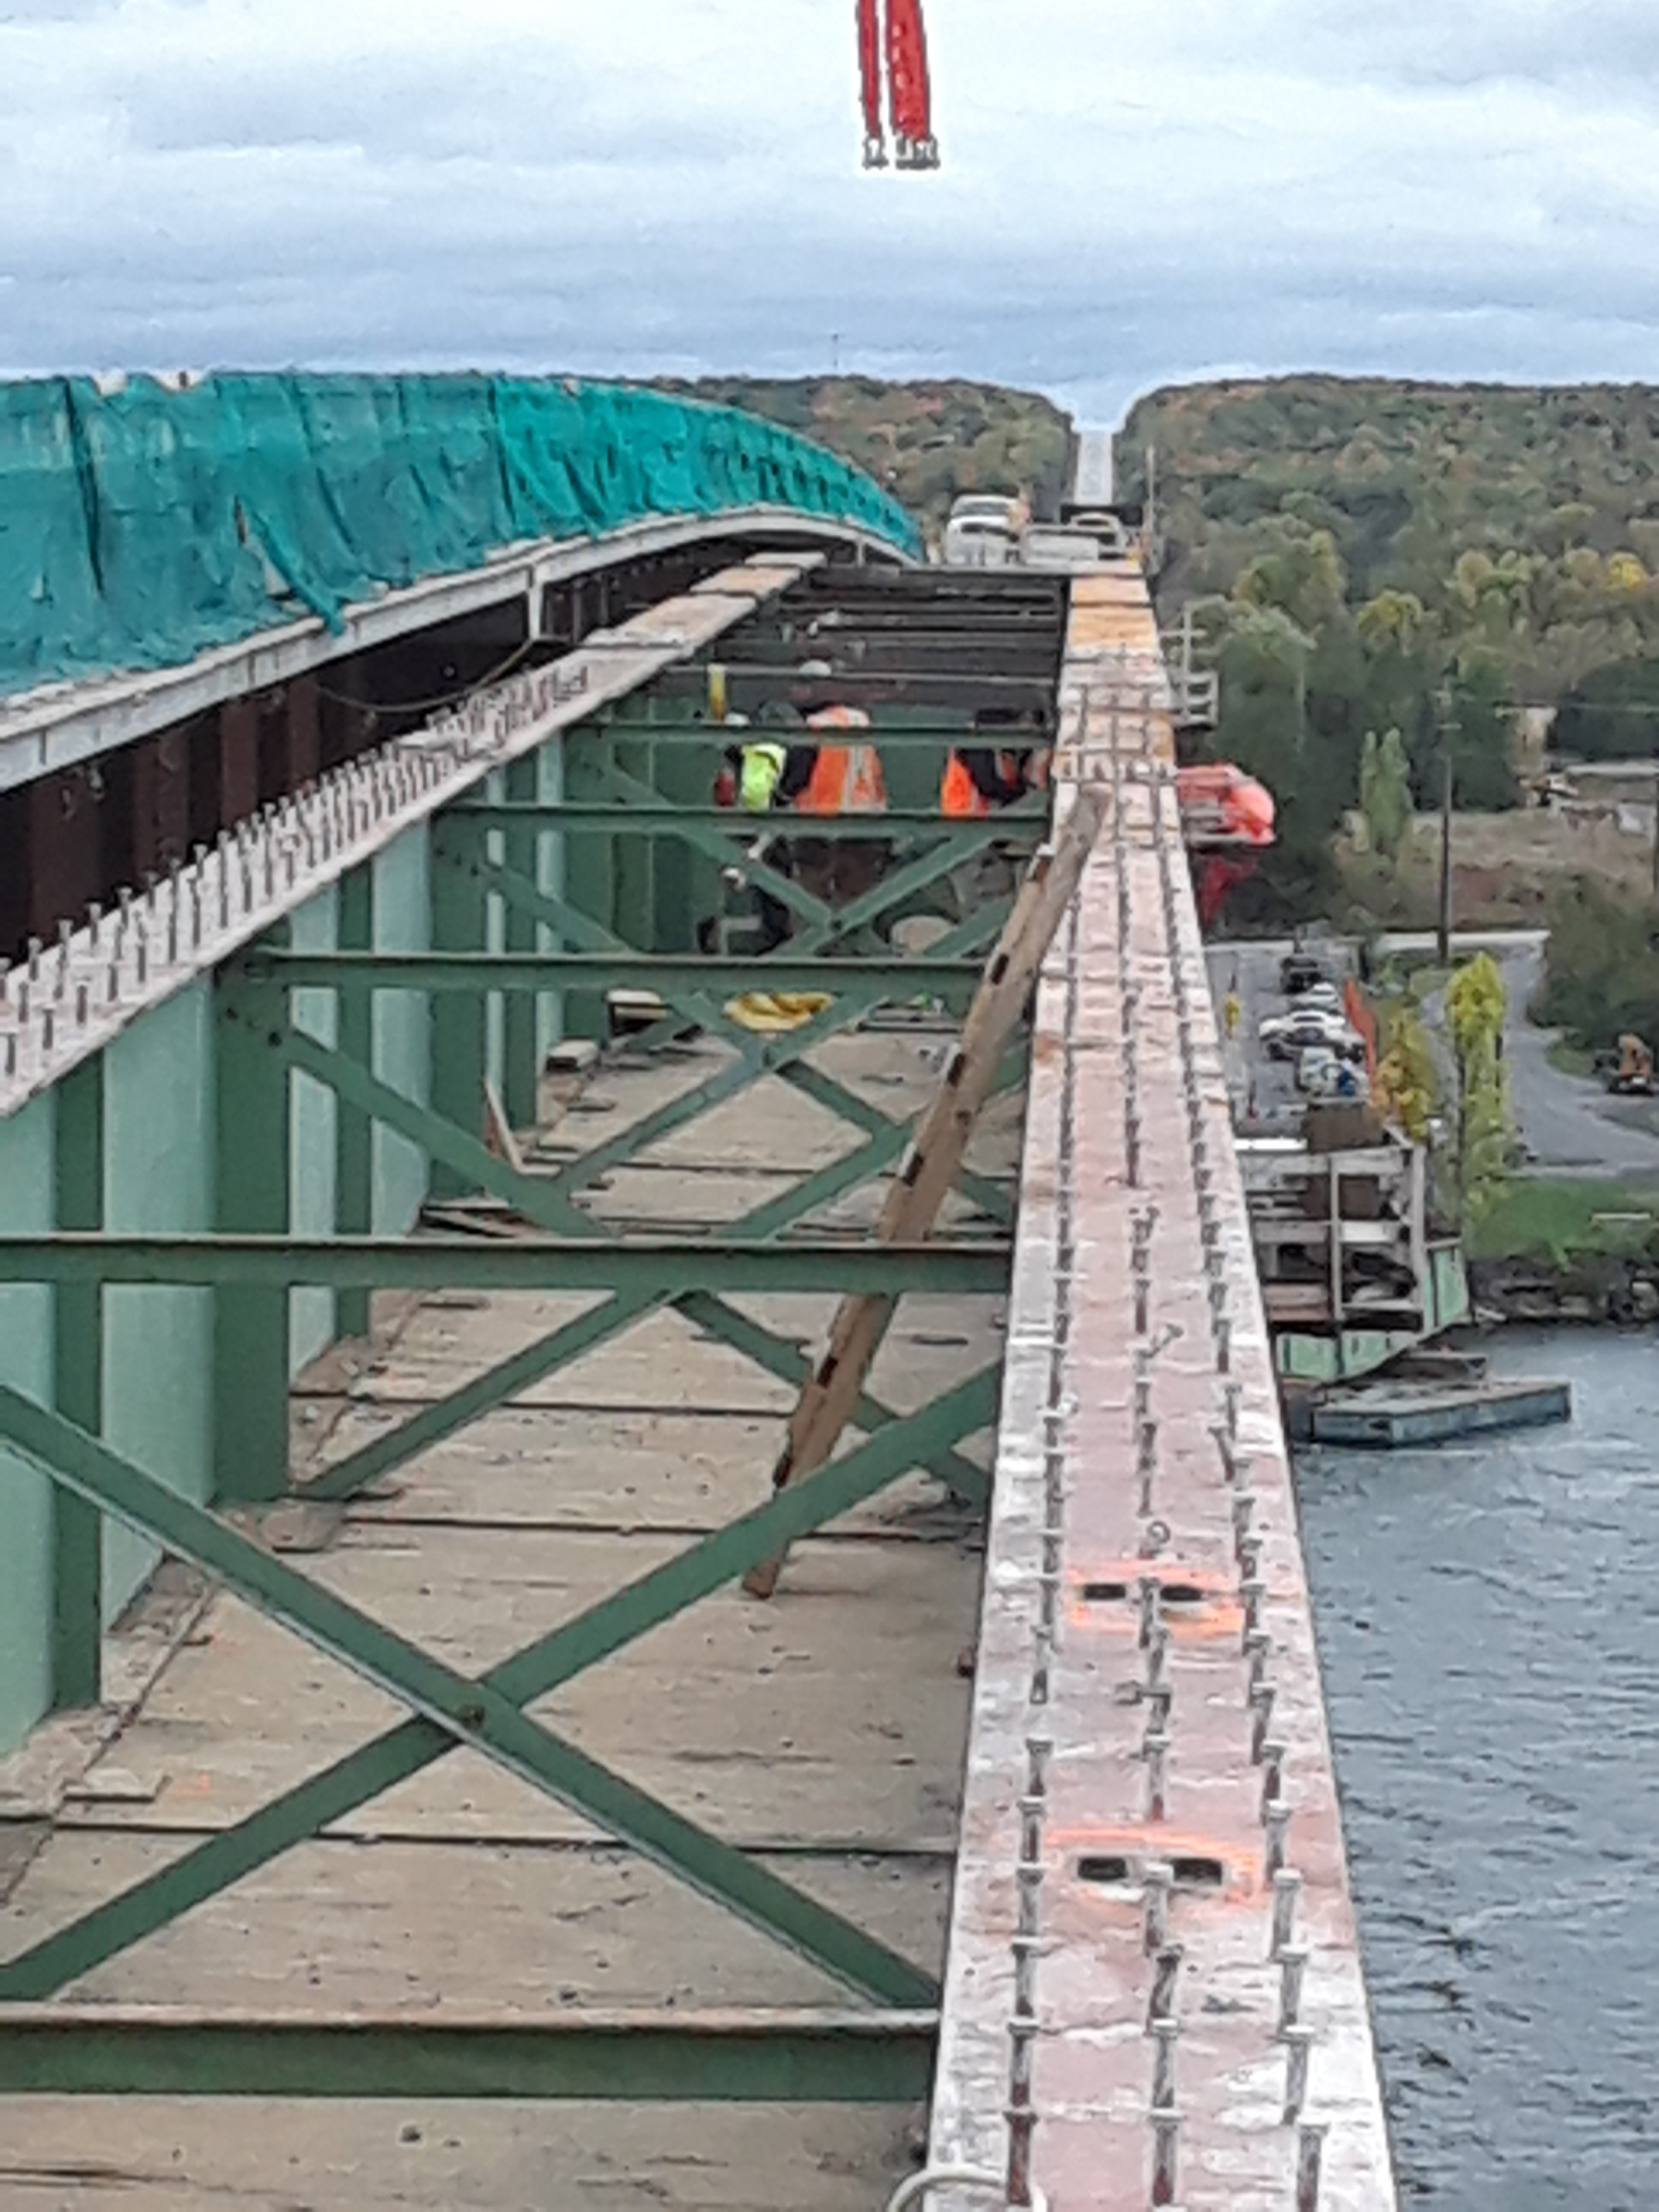 Removal of false decking prior to girder removal